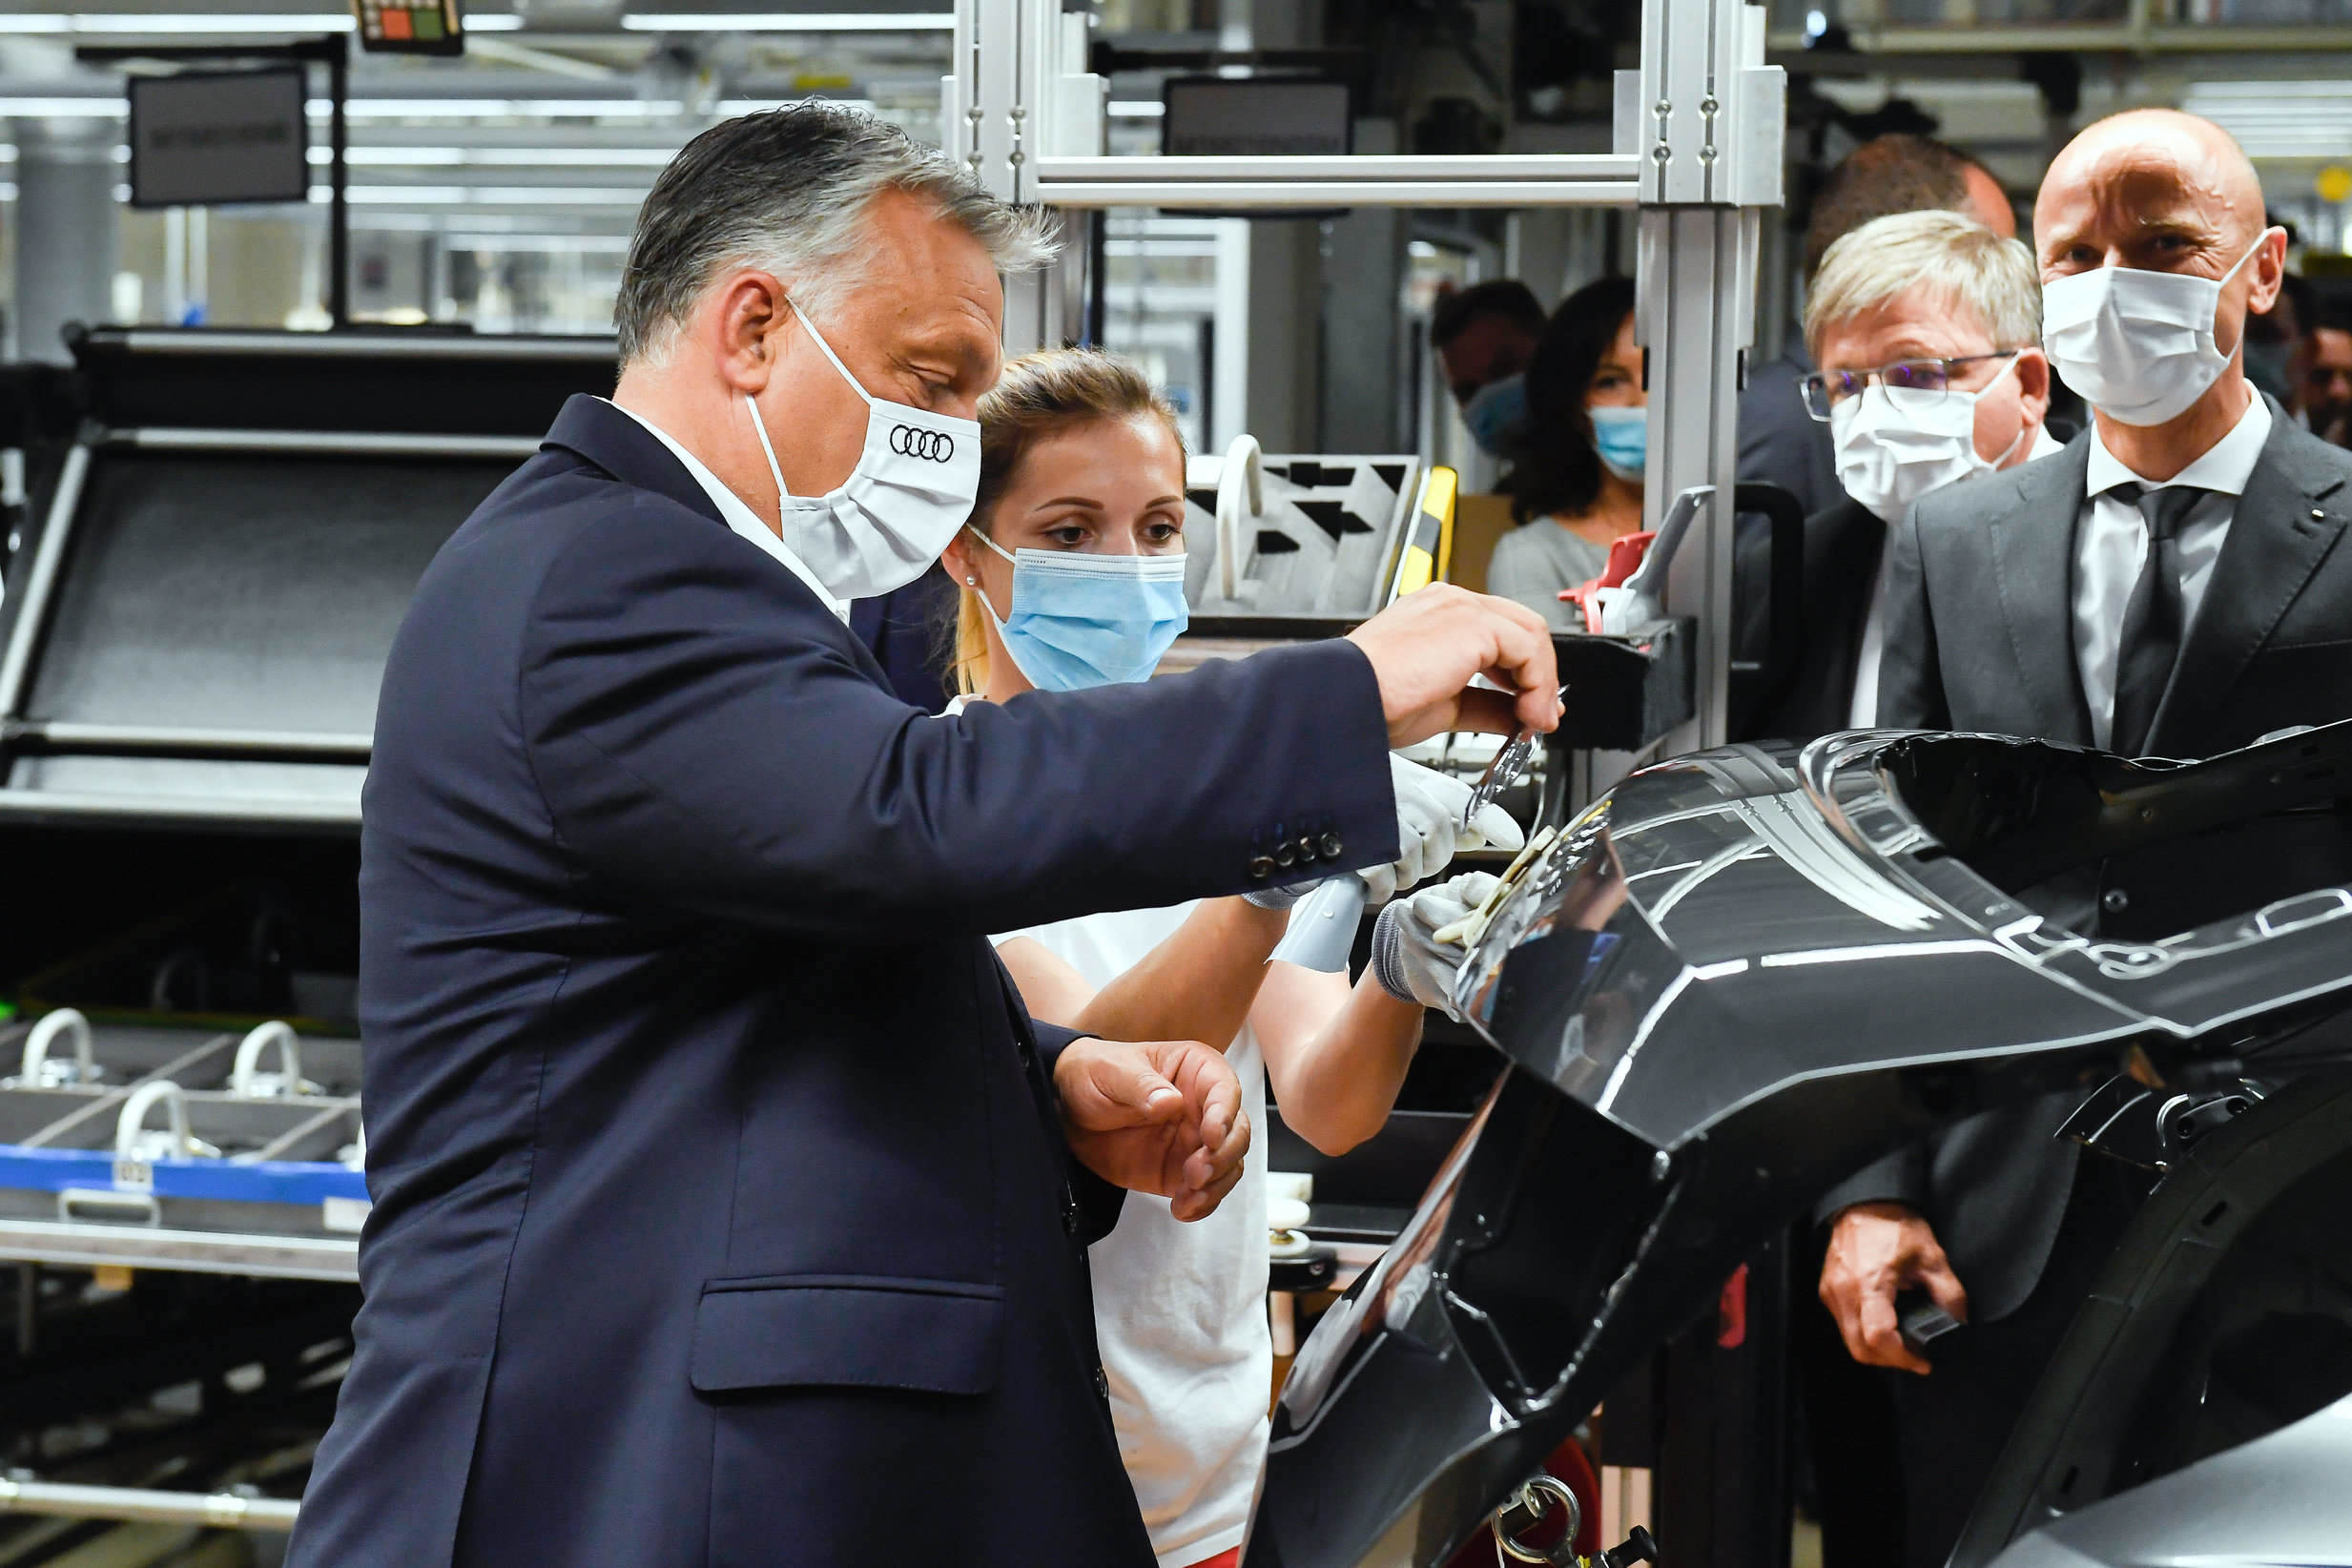 Coronavirus - Orbán warns new protection measures needed in light of upsurge abroad